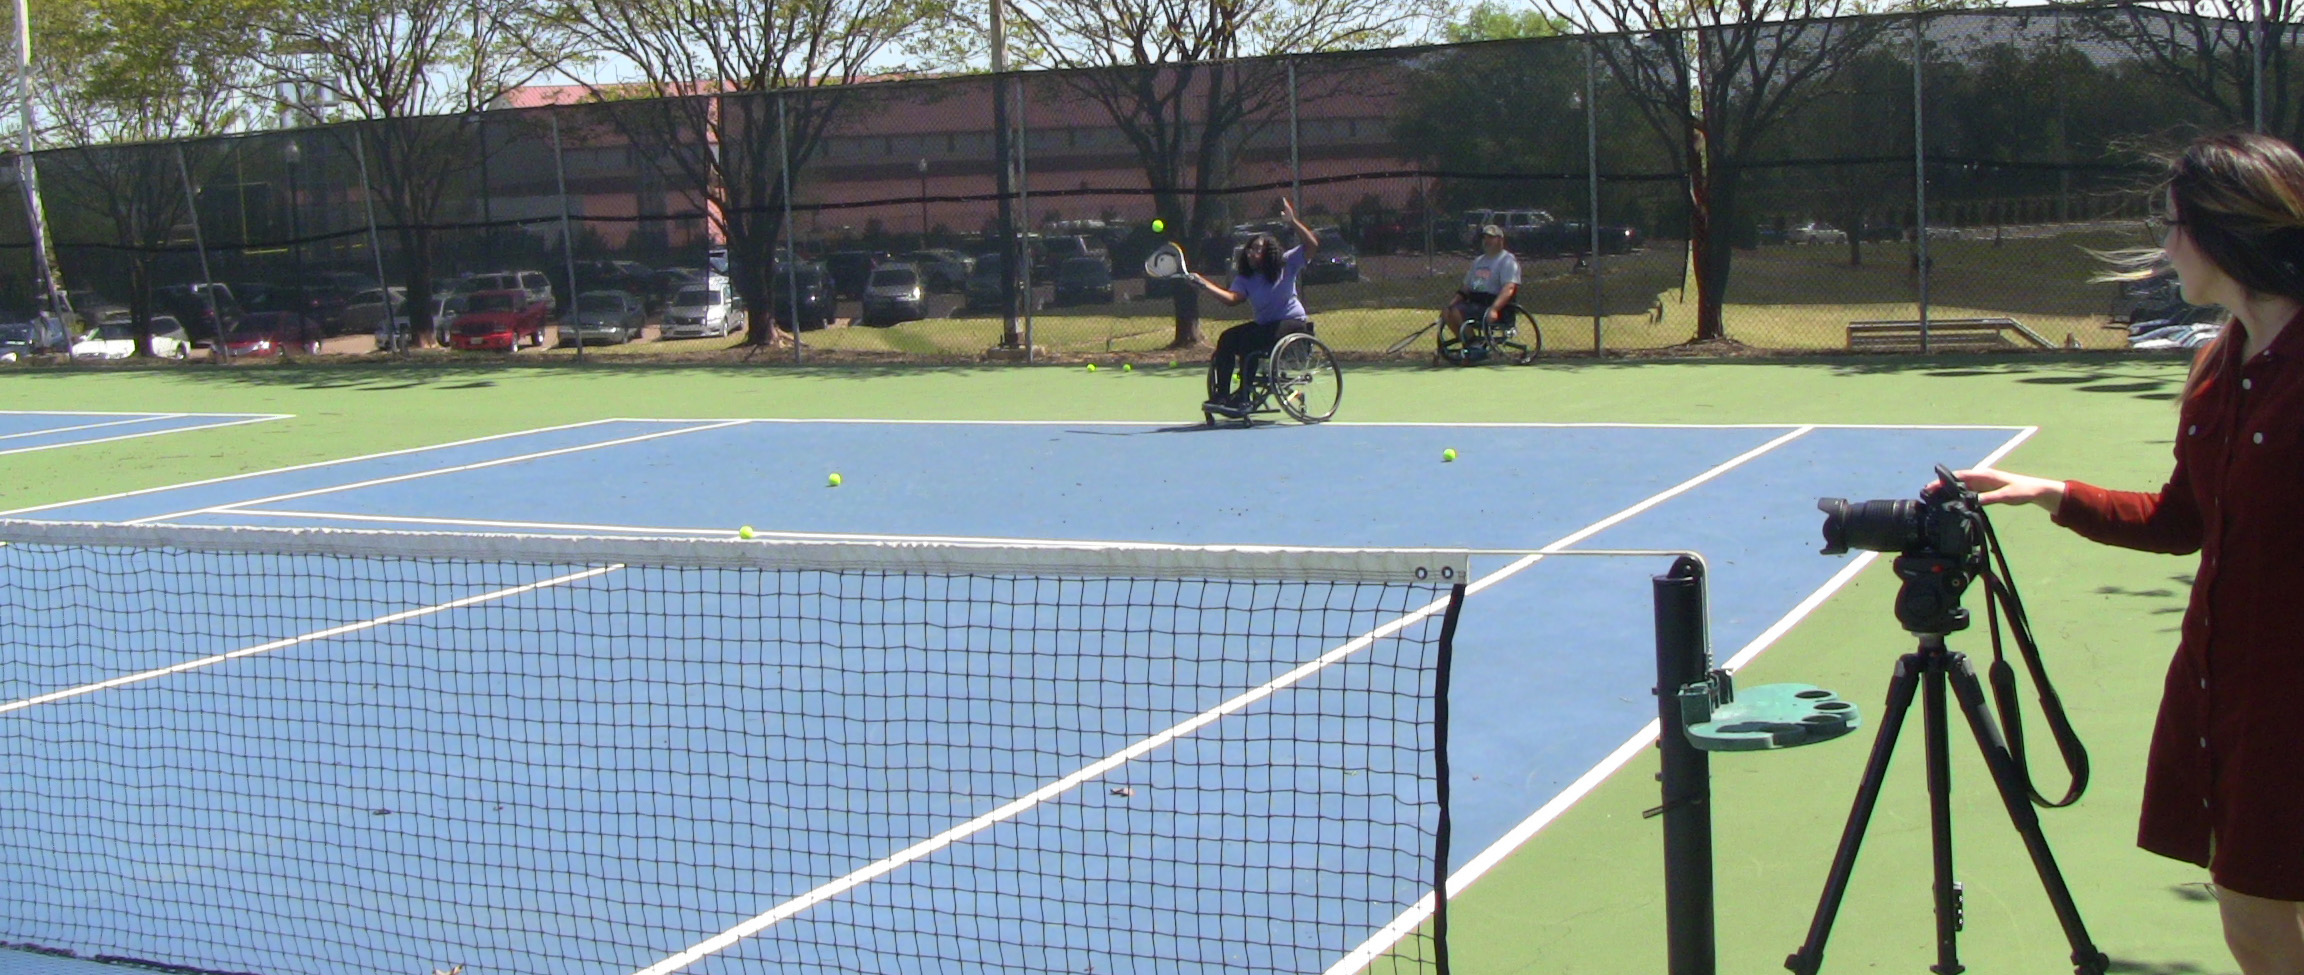 2019 Wheelchair Tennis Picture 1